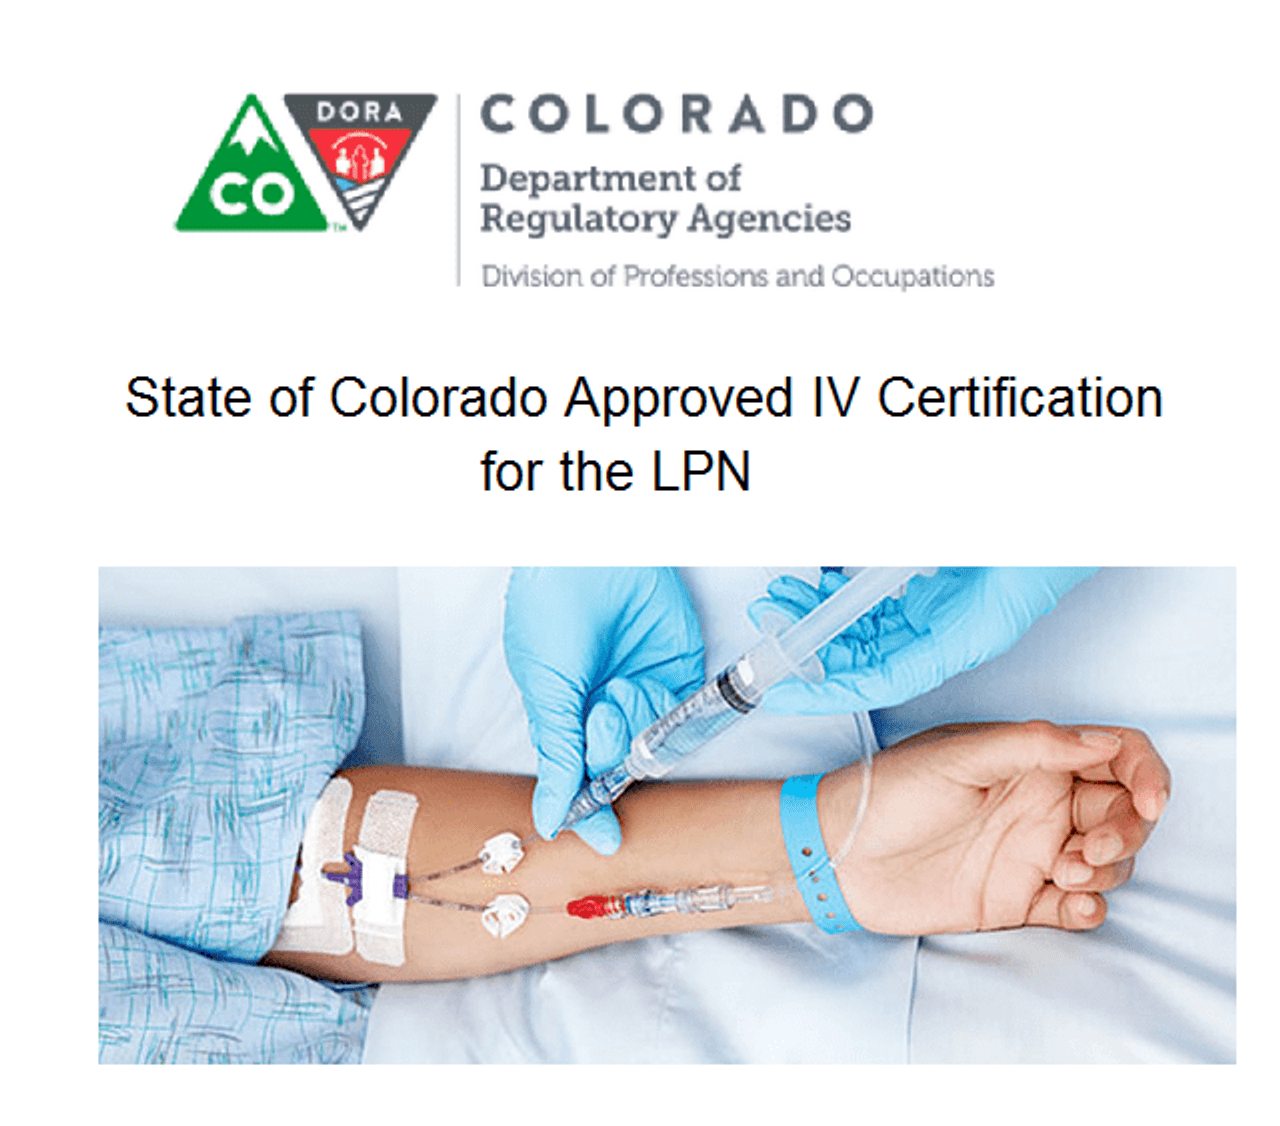 Iv Therapy And Fluid Therapy Certification Course For The Lpn And Medical Assistants State Of Colorado Approved Not For Emts At This Time